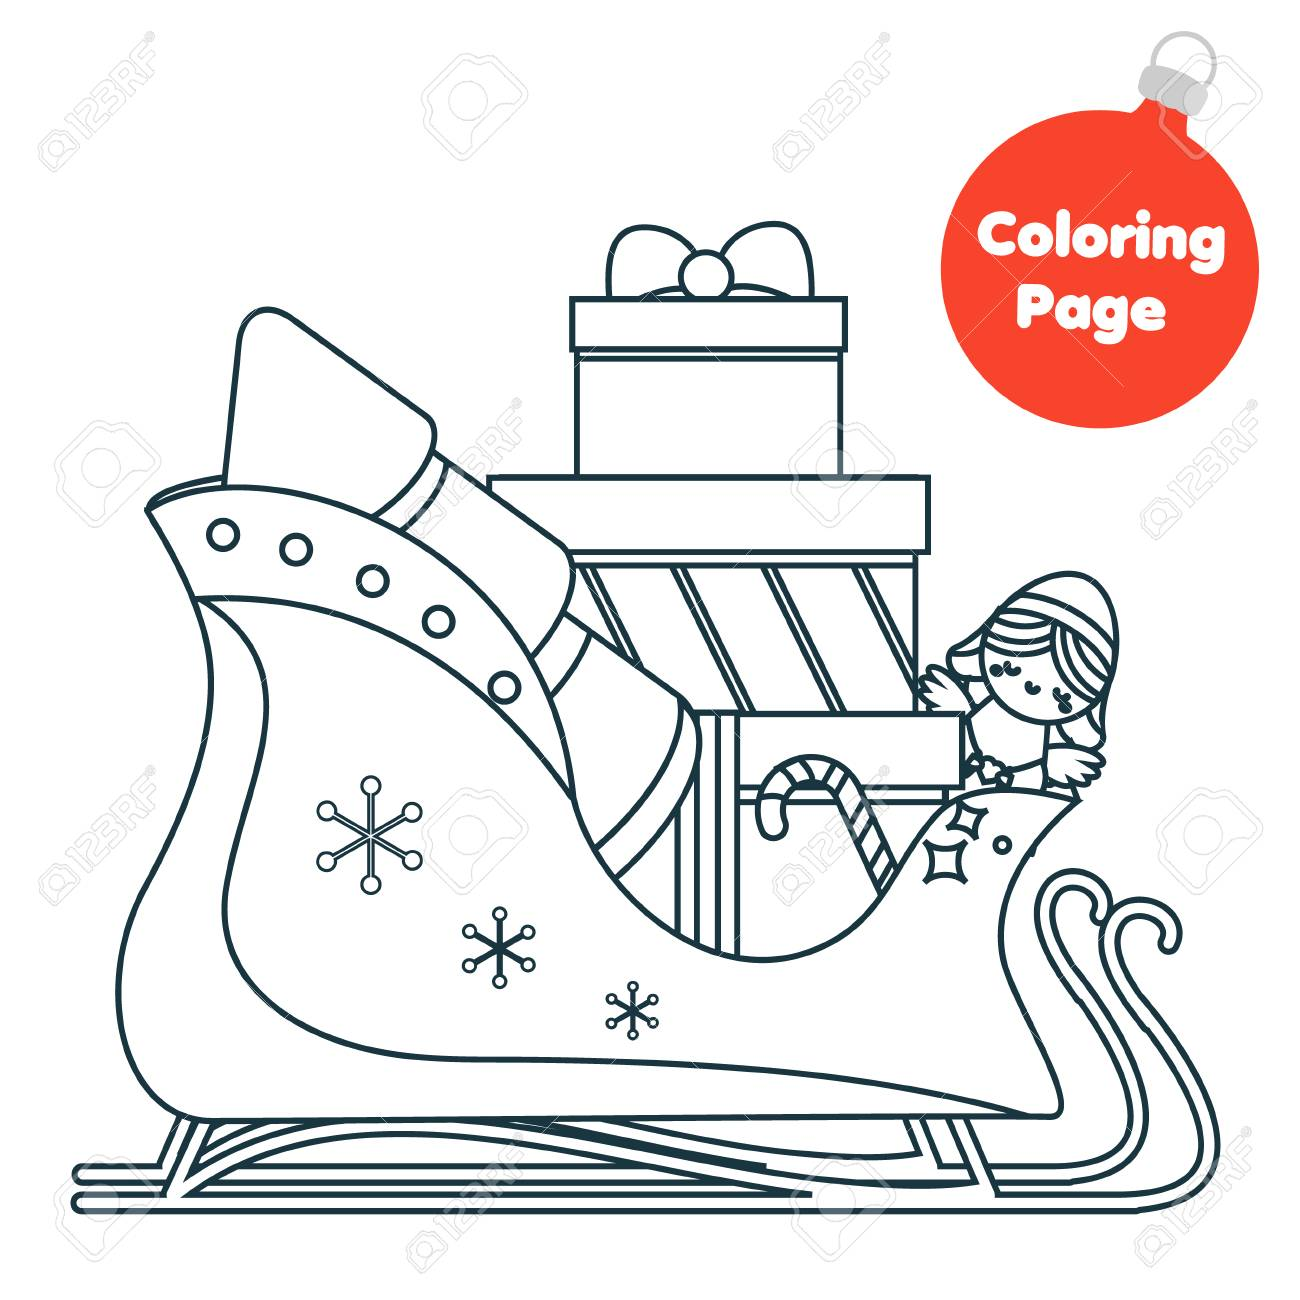 Amazon.com: Coloring Pages Trolls PDF, Cute Easy Printable for ... | 1300x1300